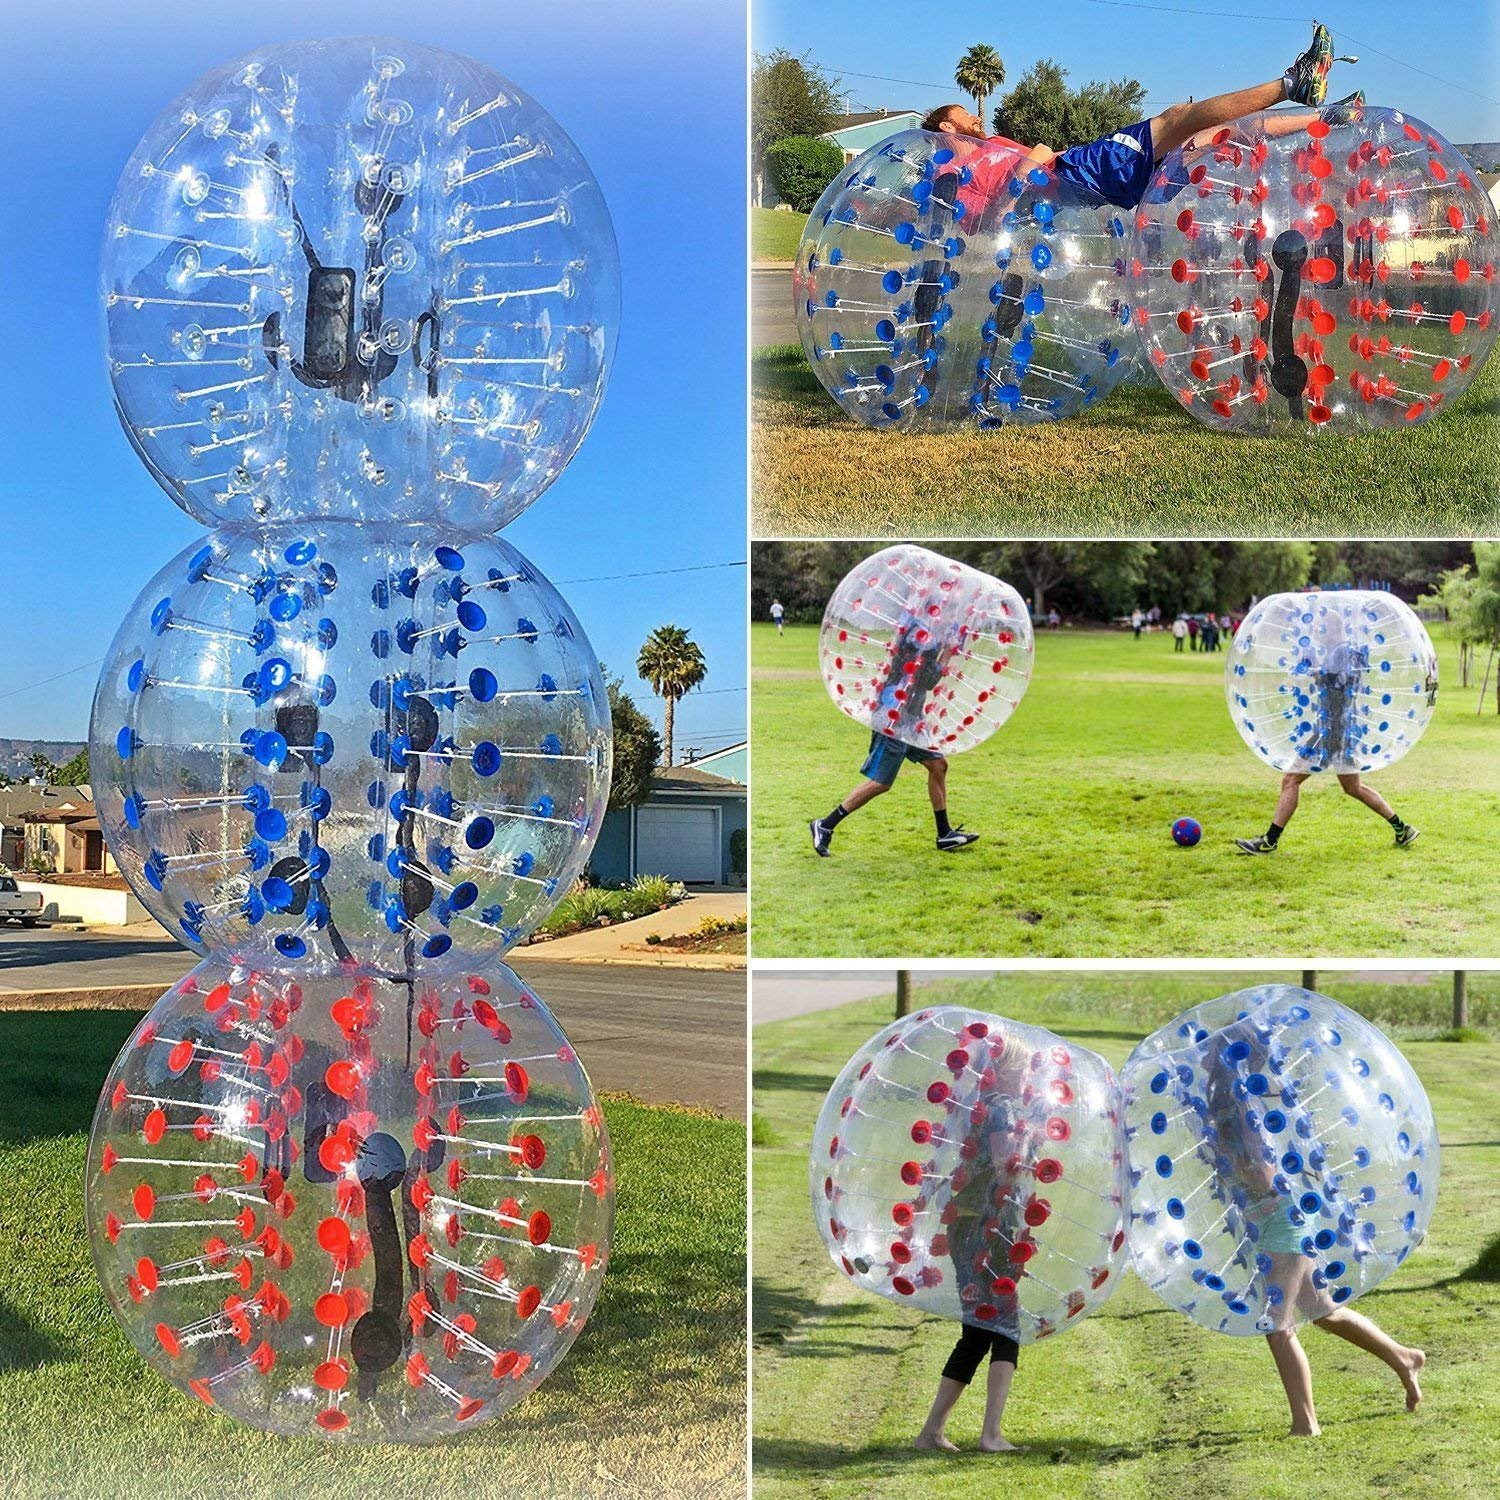 Hurbo Inflatable Bumper Ball Bubble Soccer Ball Dia 4 ft /5 ft (1.2/1.5 m) Giant Human Hamster Ball for Adults and Kids by Hurbo (Image #4)